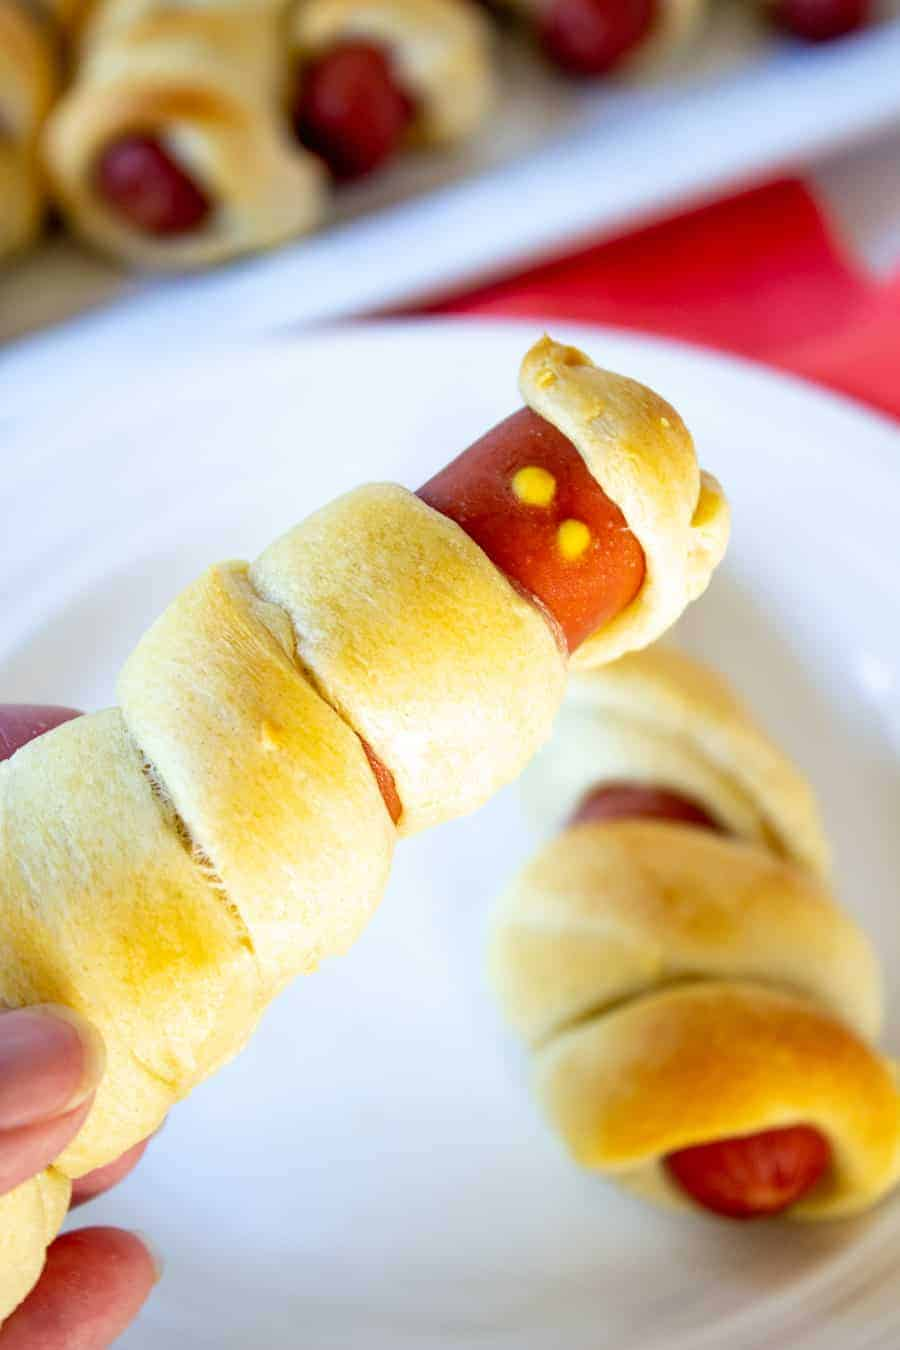 A hot dog wrapped in bread dough.